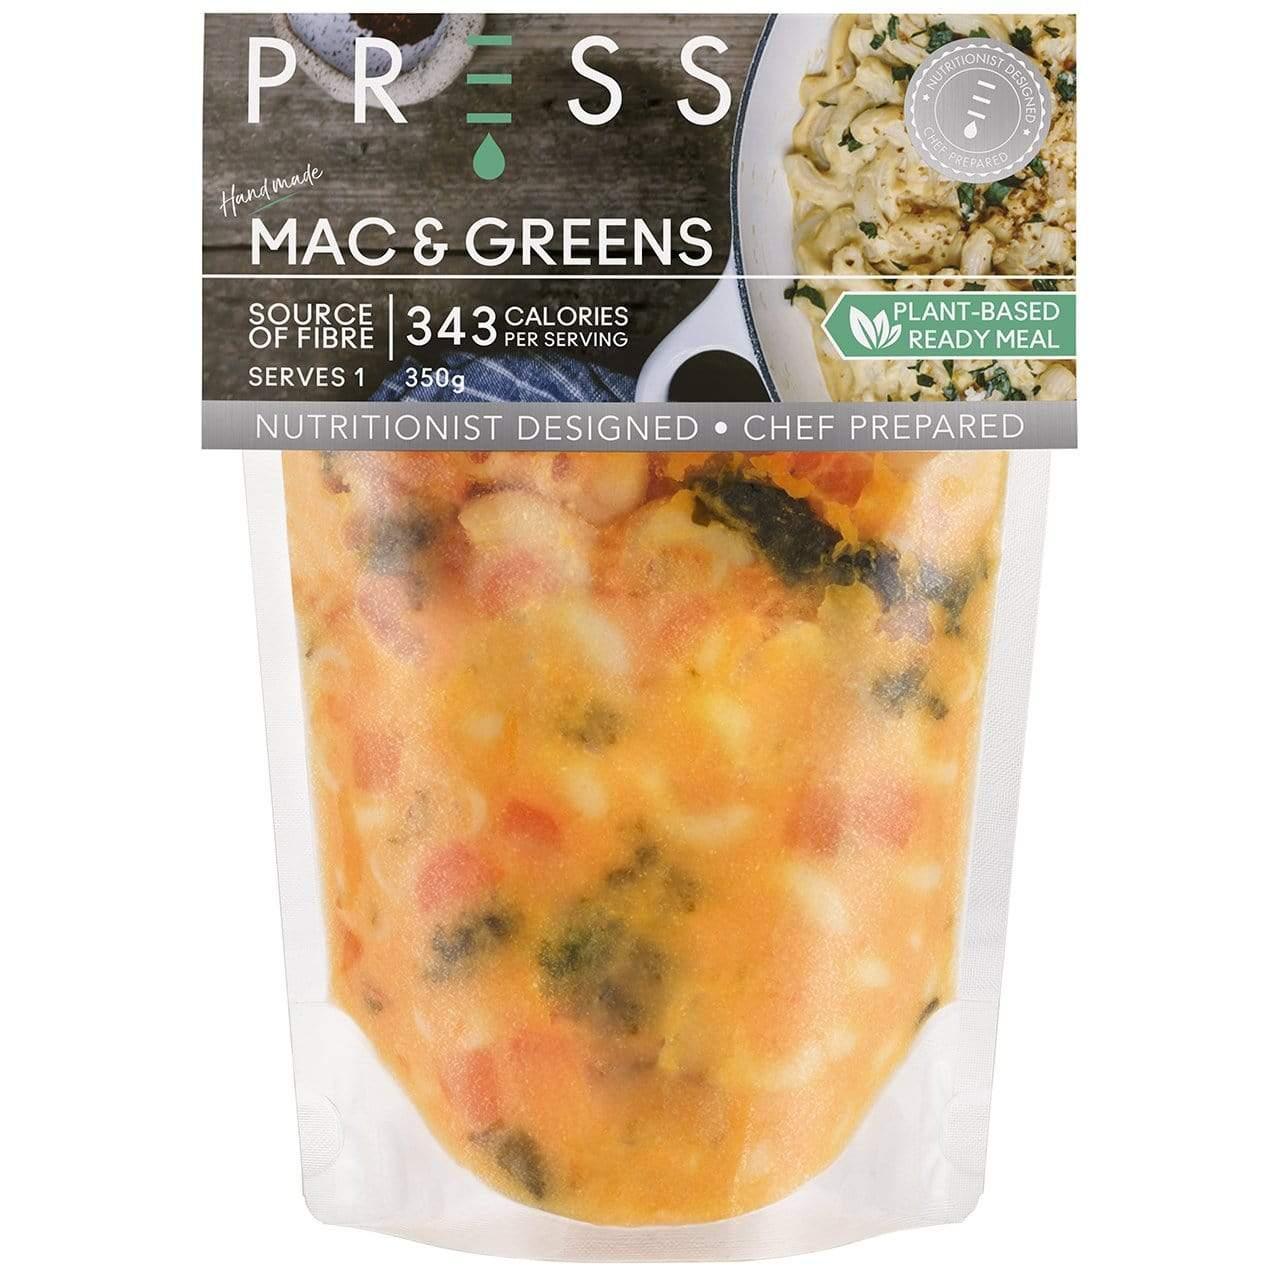 Mac & Greens - PRESS London